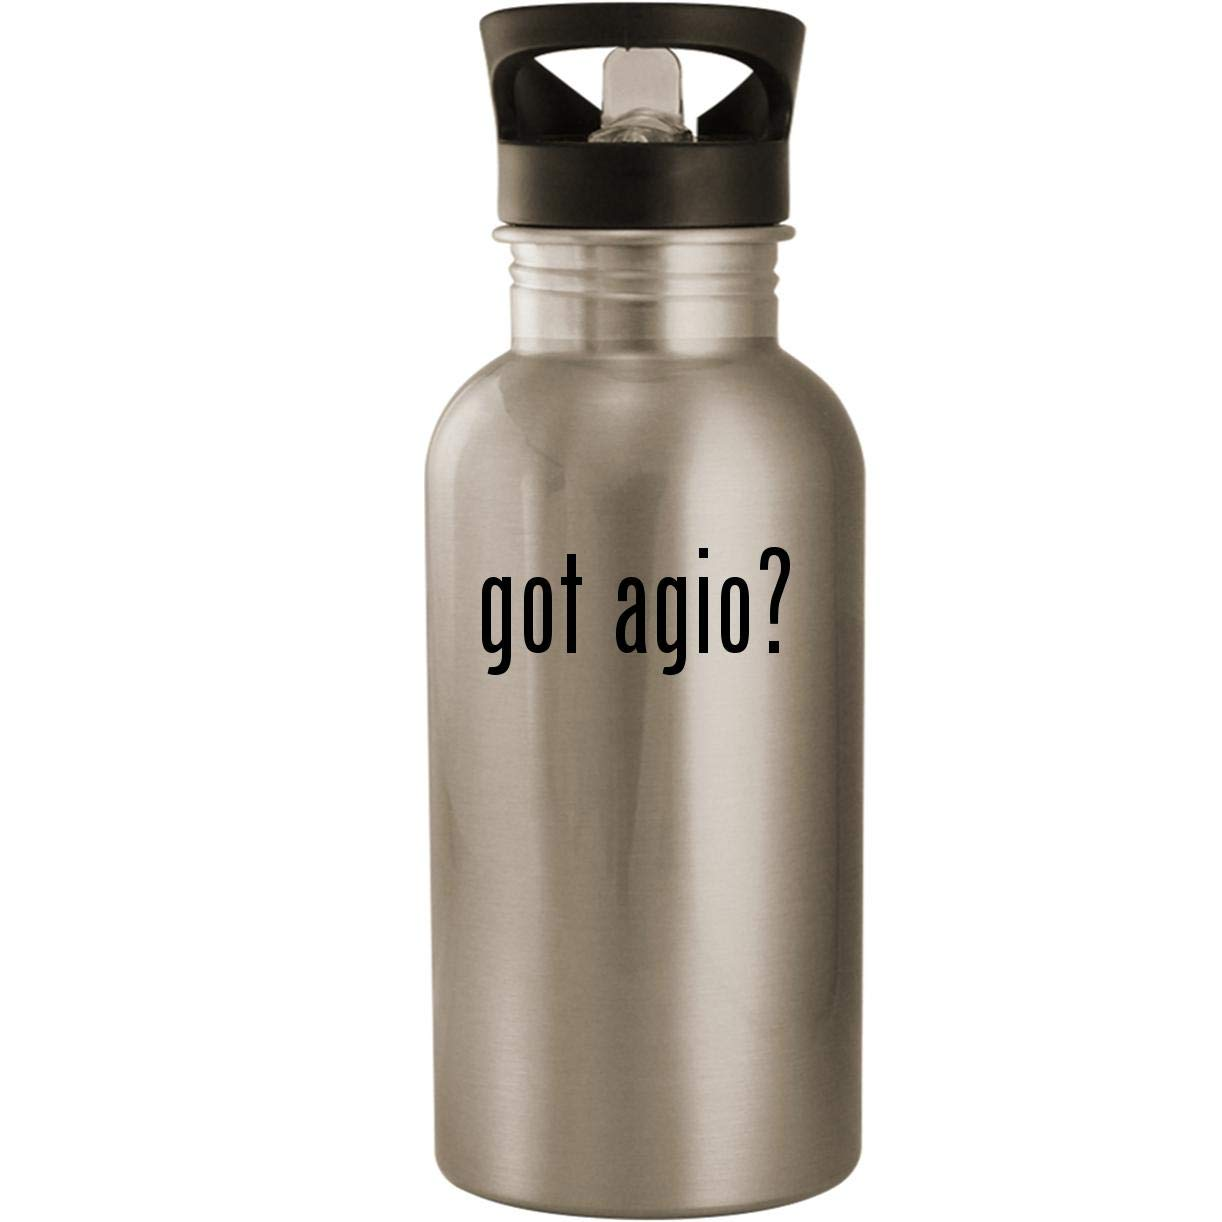 got agio? - Stainless Steel 20oz Road Ready Water Bottle, Silver